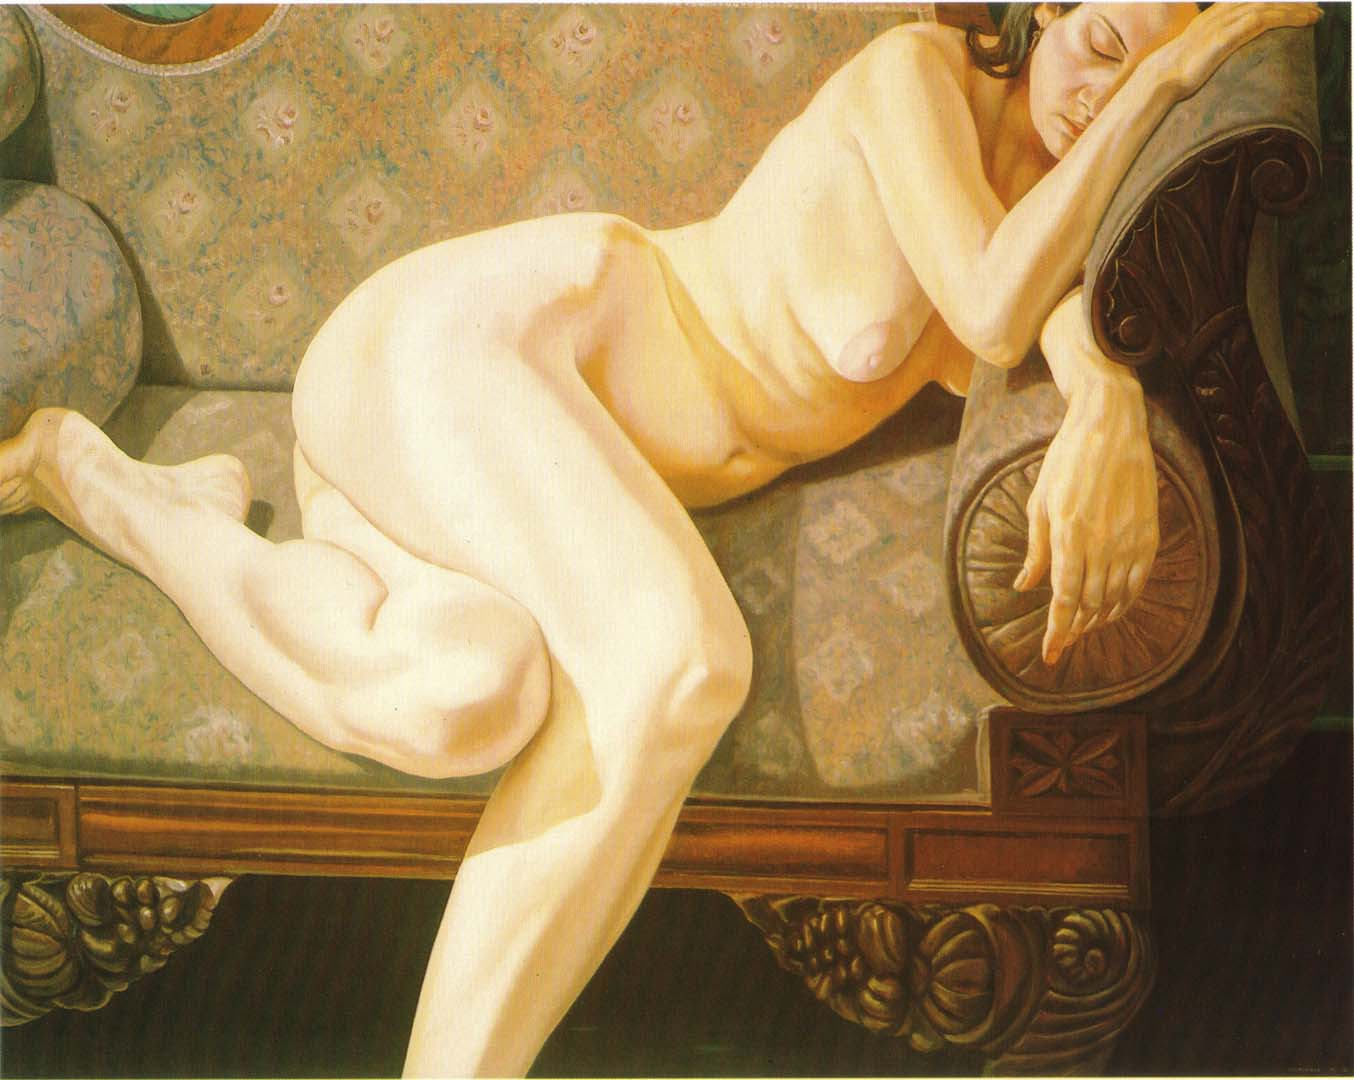 "1973 Female Model Reclining on Empire Sofa Oil on Canvas 48"" x 60"""